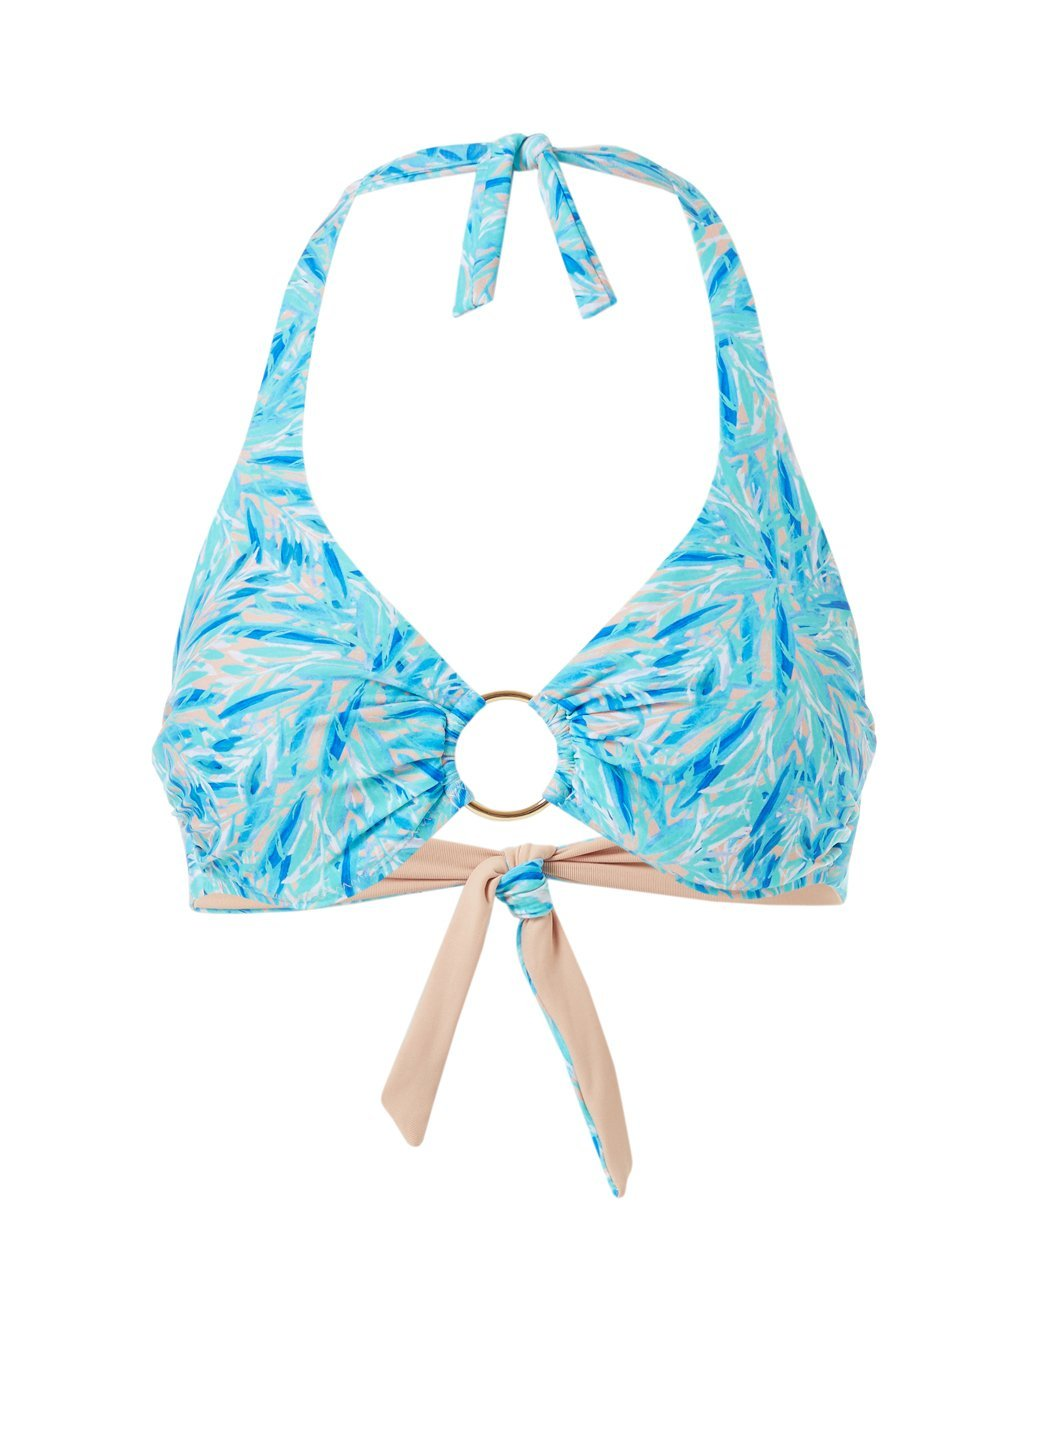 Brussels Blue Leaf Halterneck Ring Supportive Bikini Top